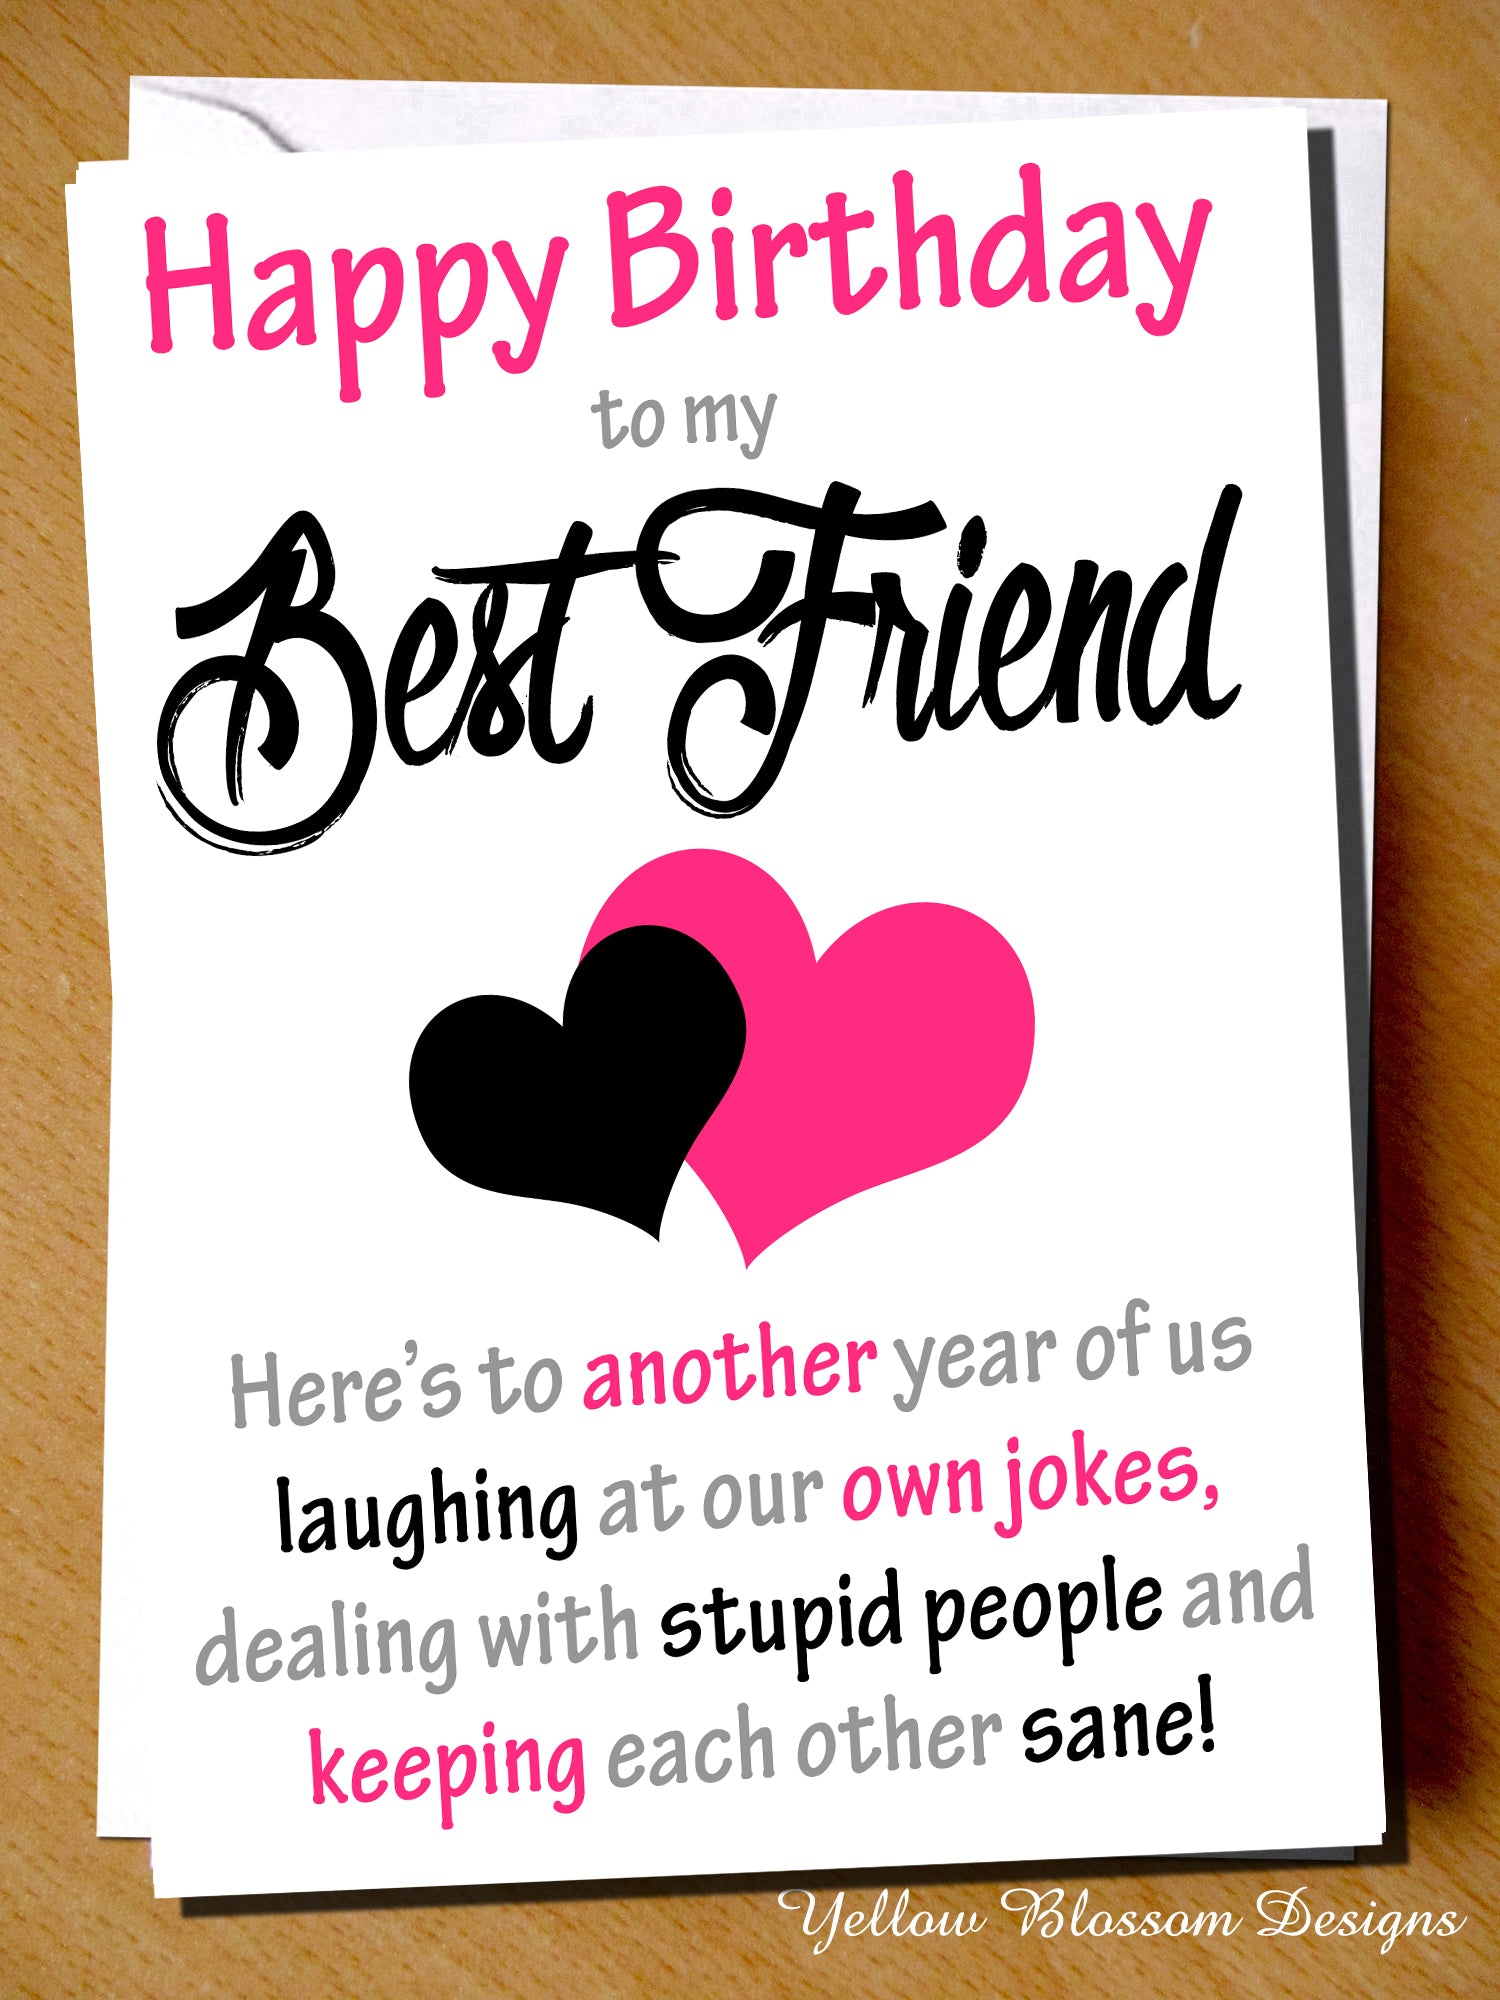 Marvelous Happy Birthday Card To My Best Friend Own Jokes Stupid People Personalised Birthday Cards Veneteletsinfo